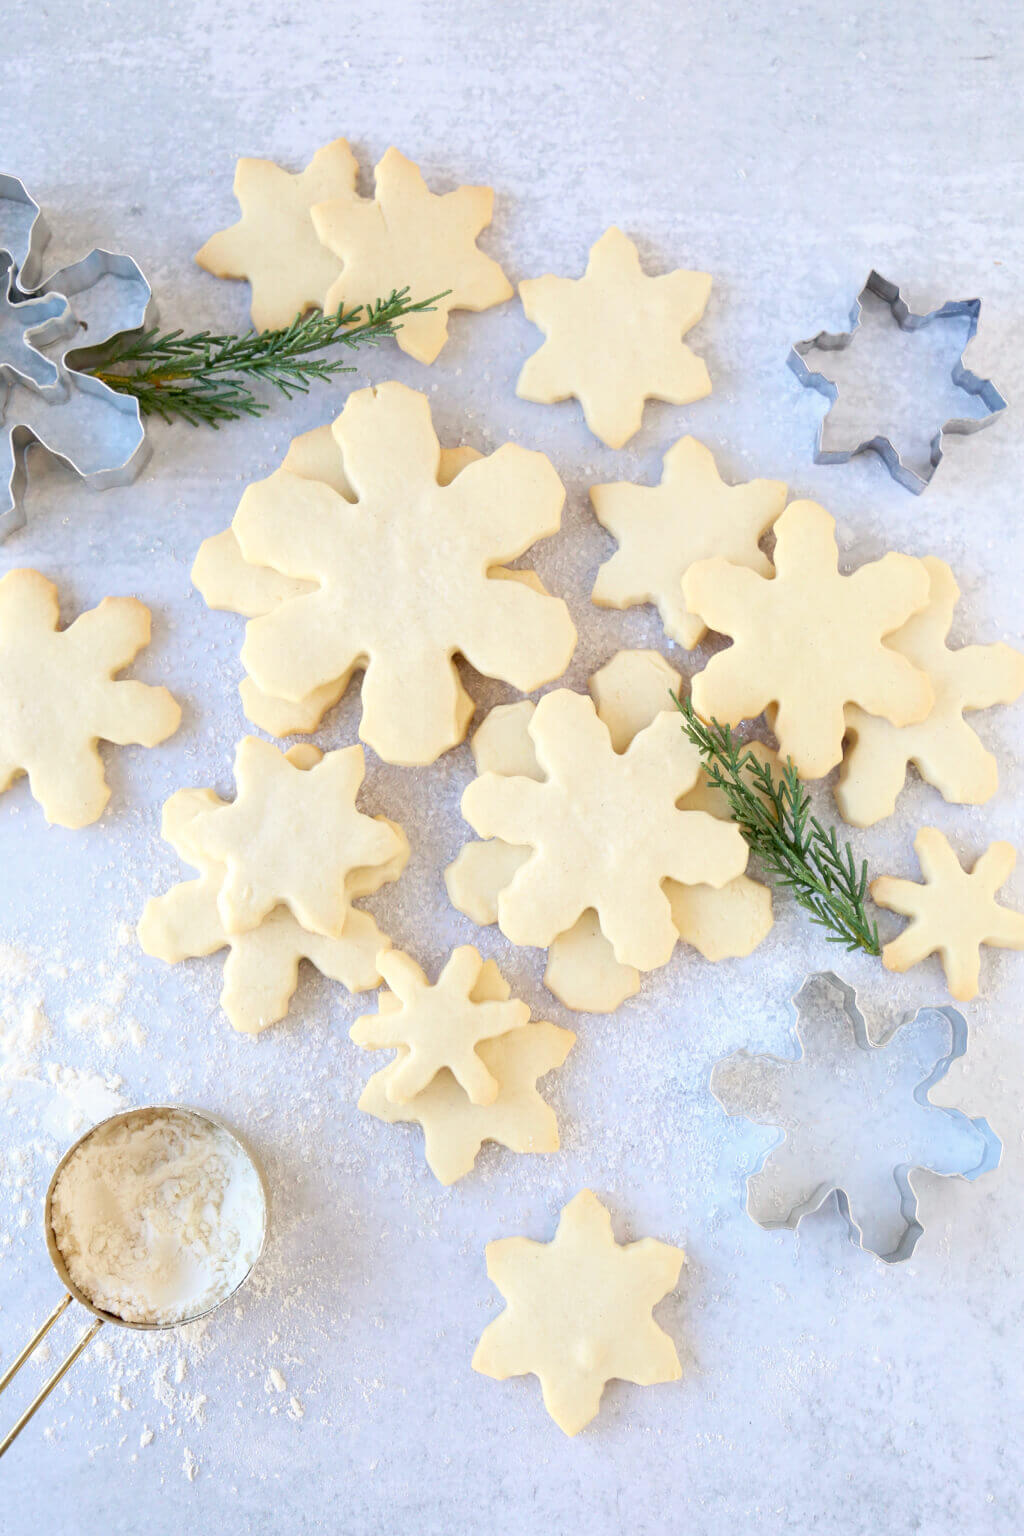 Snowflake cut out cookies stacked with greenery for decoration